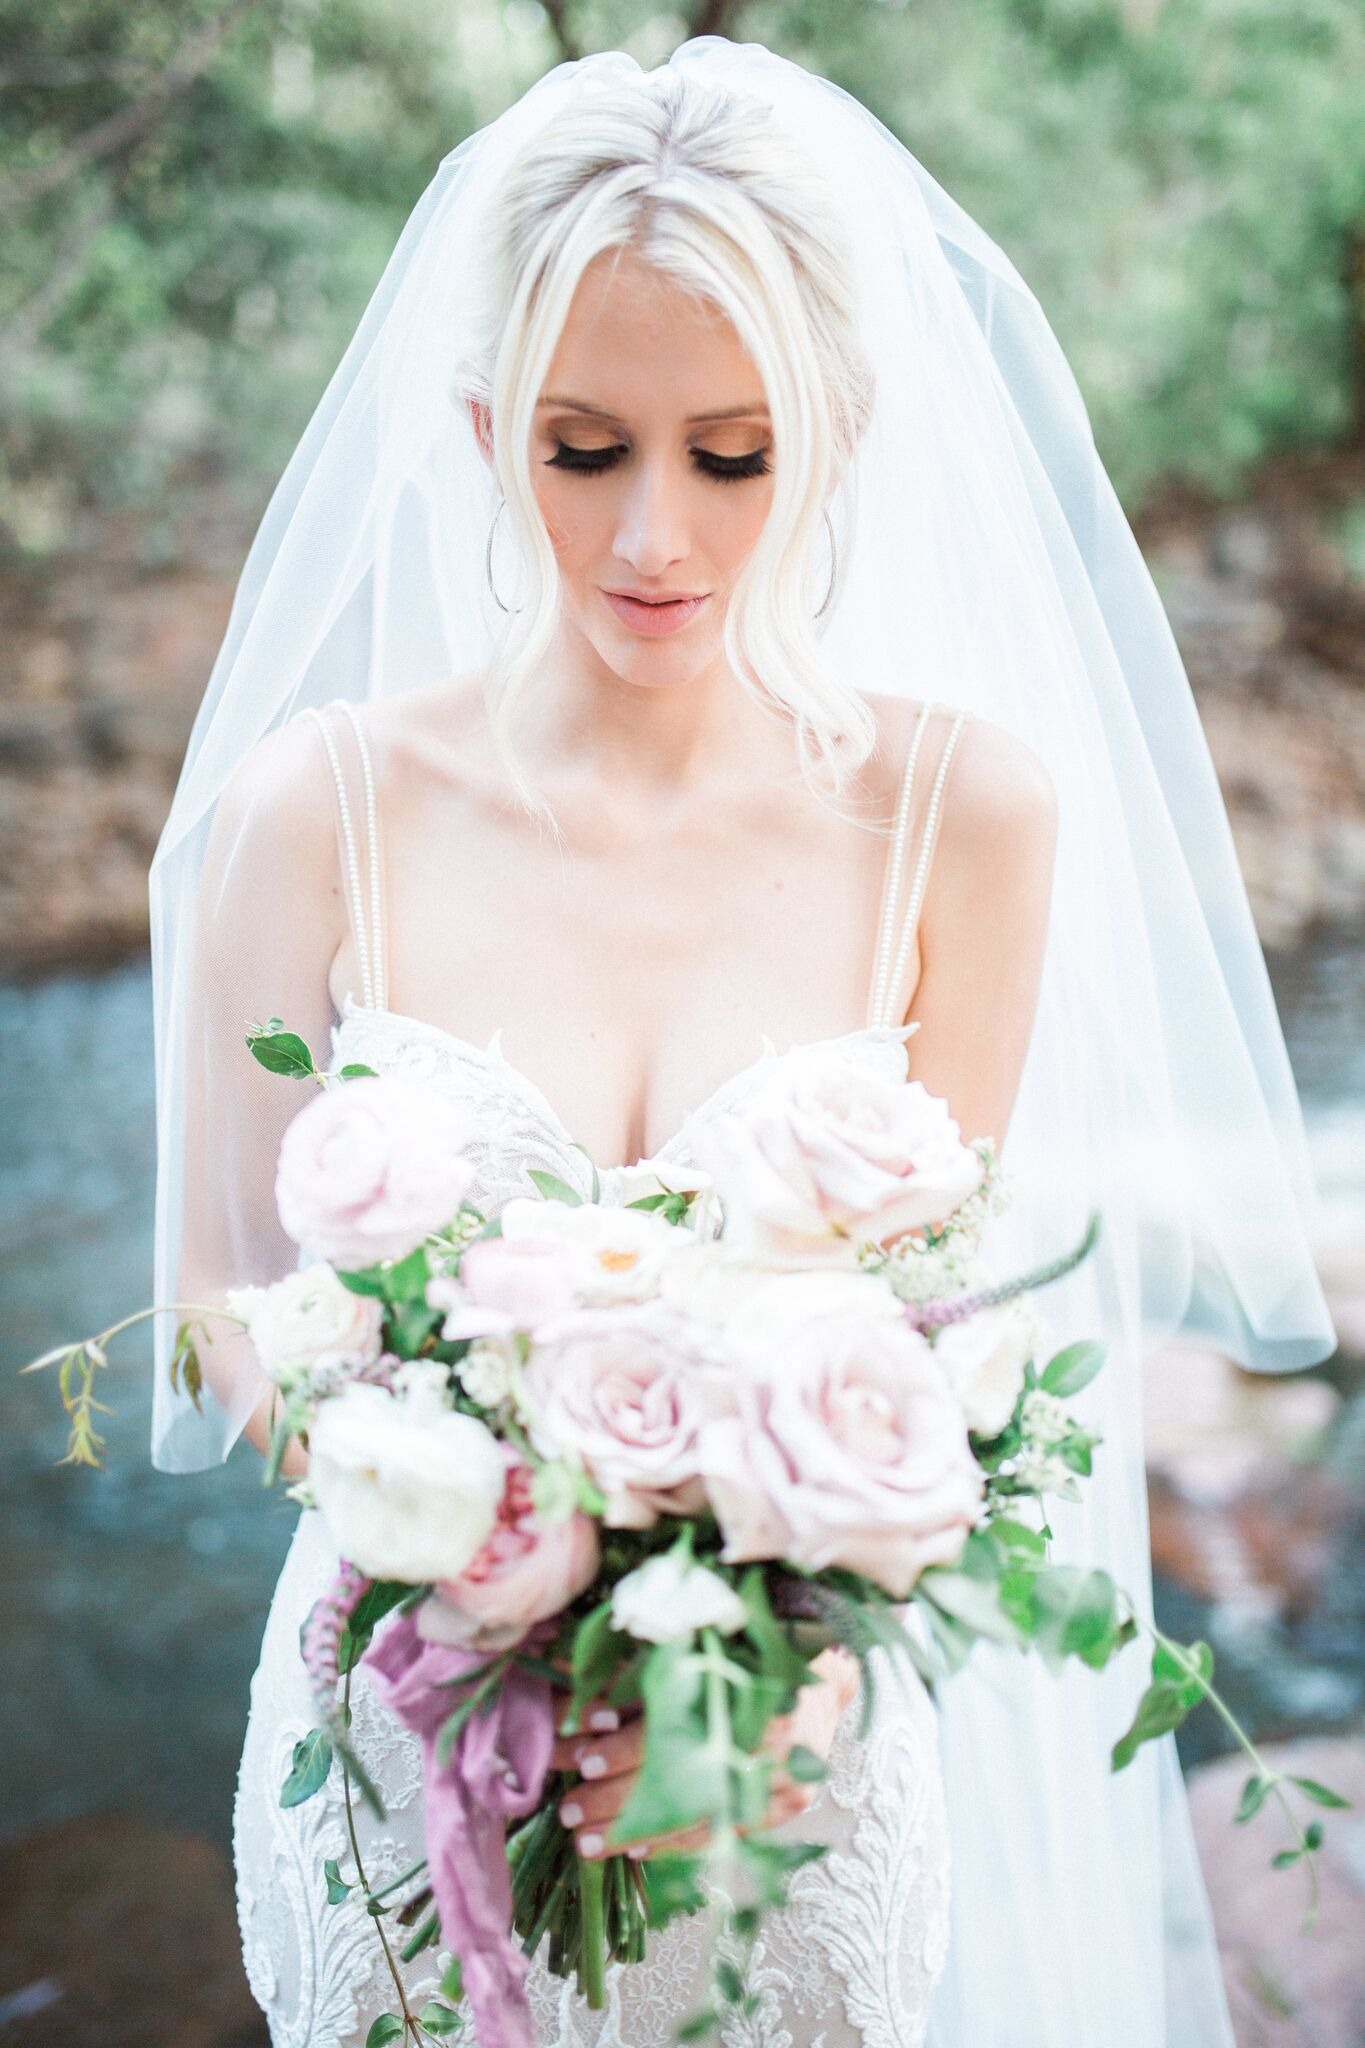 MaryClairePhotography-486_preview.jpg